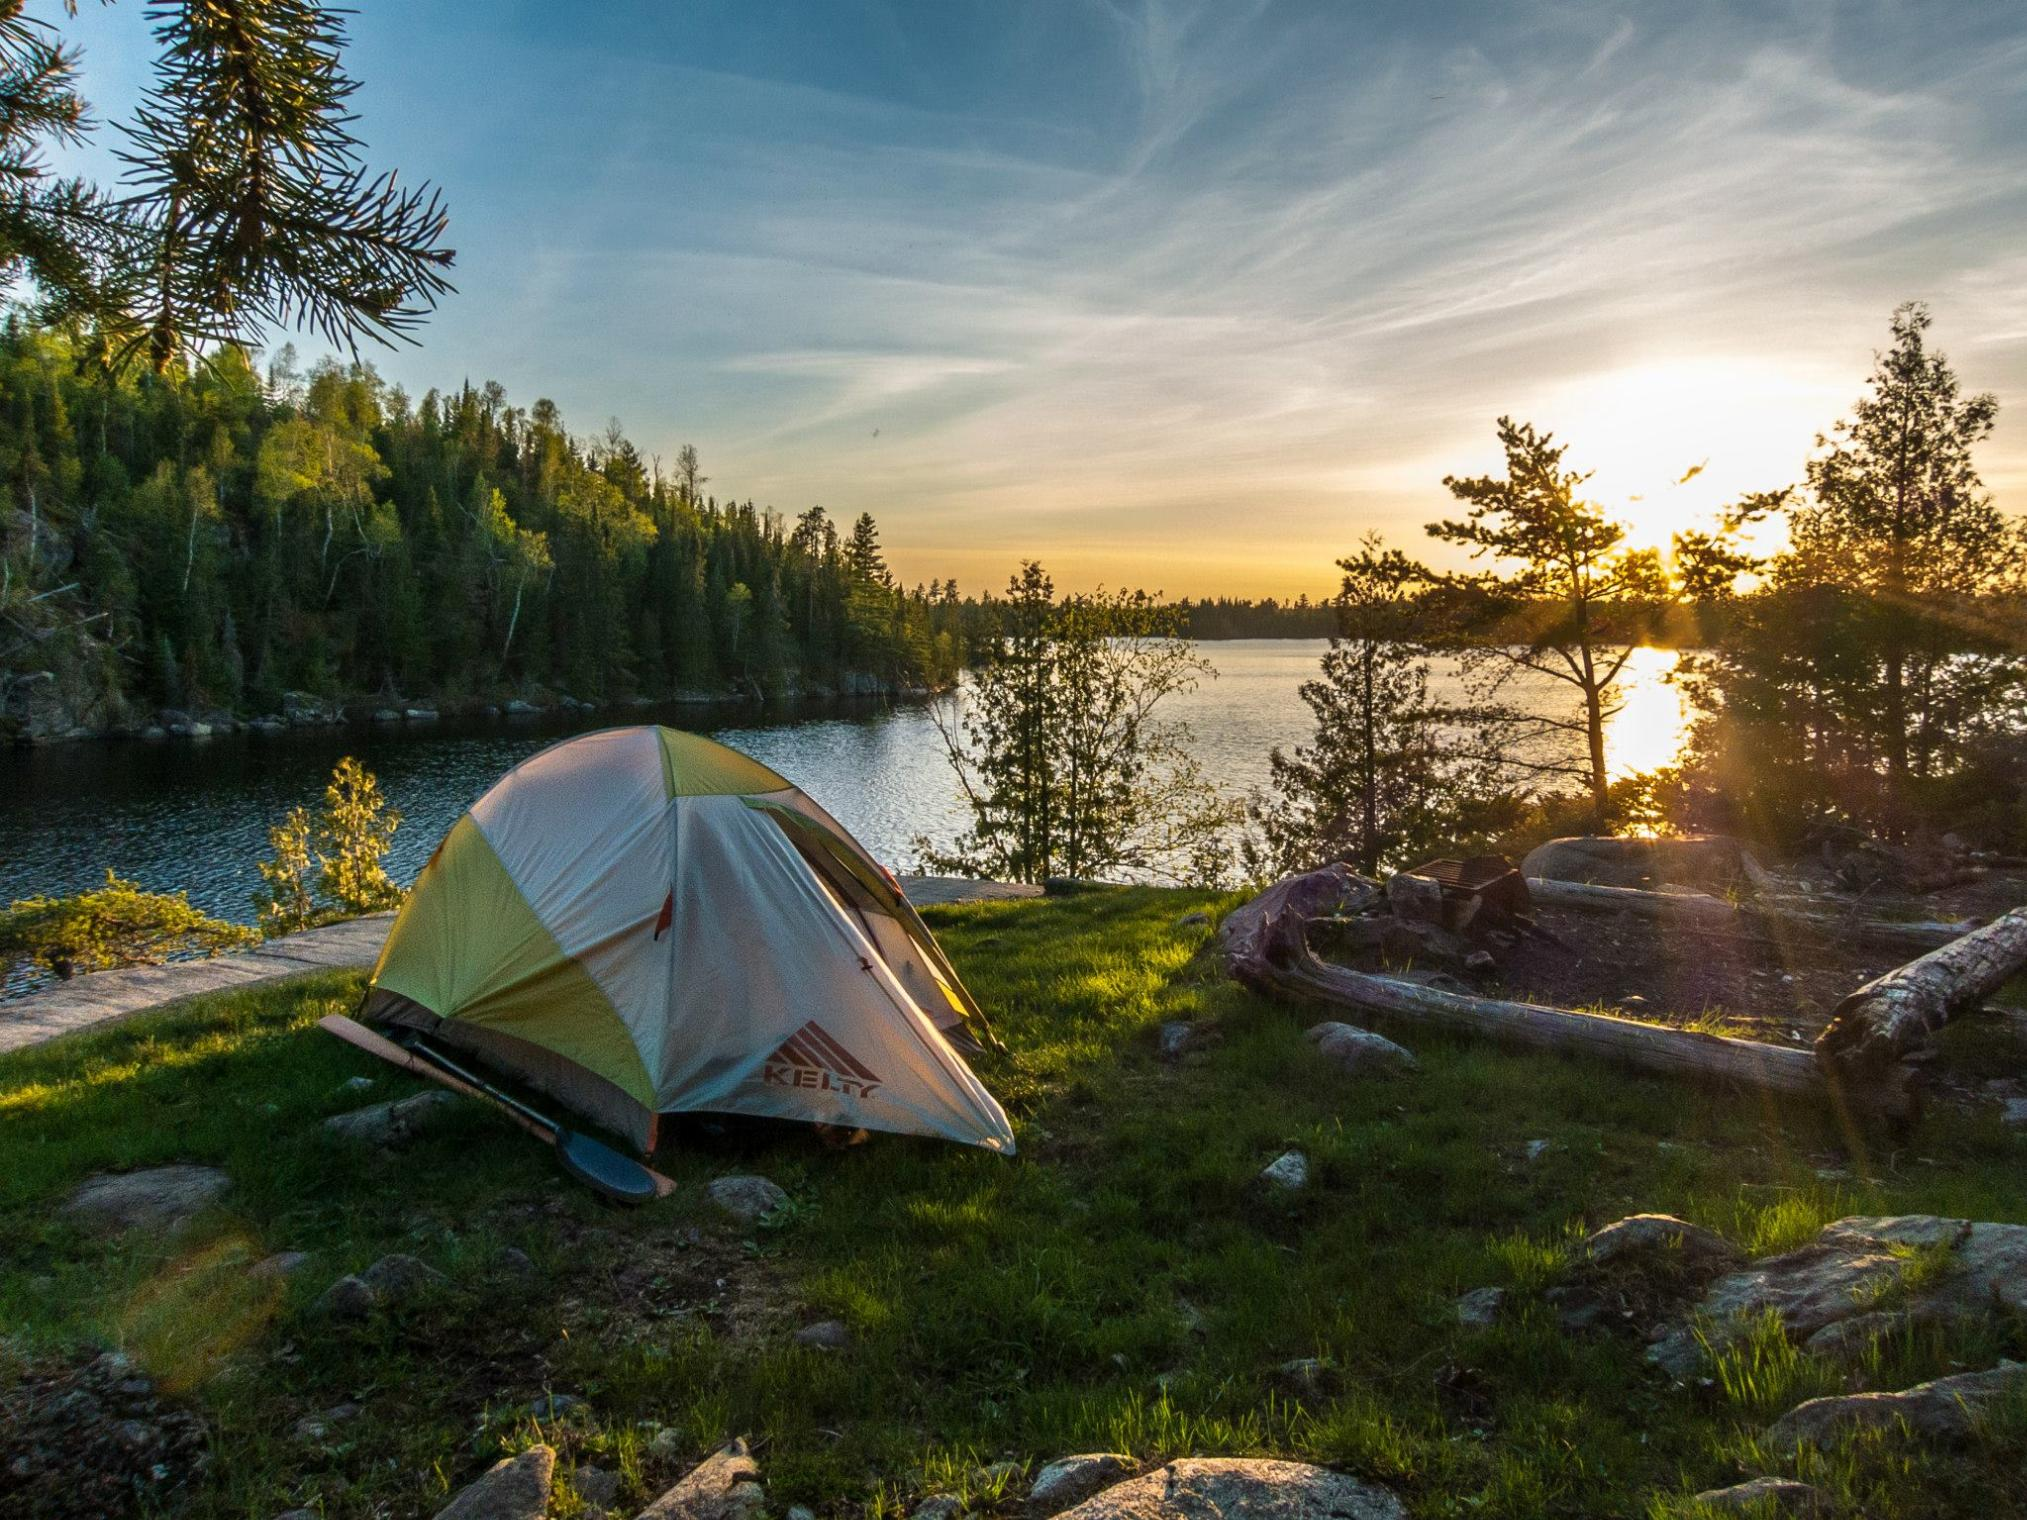 Used my Kelty Grand Mesa 2 on my past 2 trips. Easy to setup and fairly lightweight. & BWCA Poll-Most popular tent in the BWCA and your tent is what ...